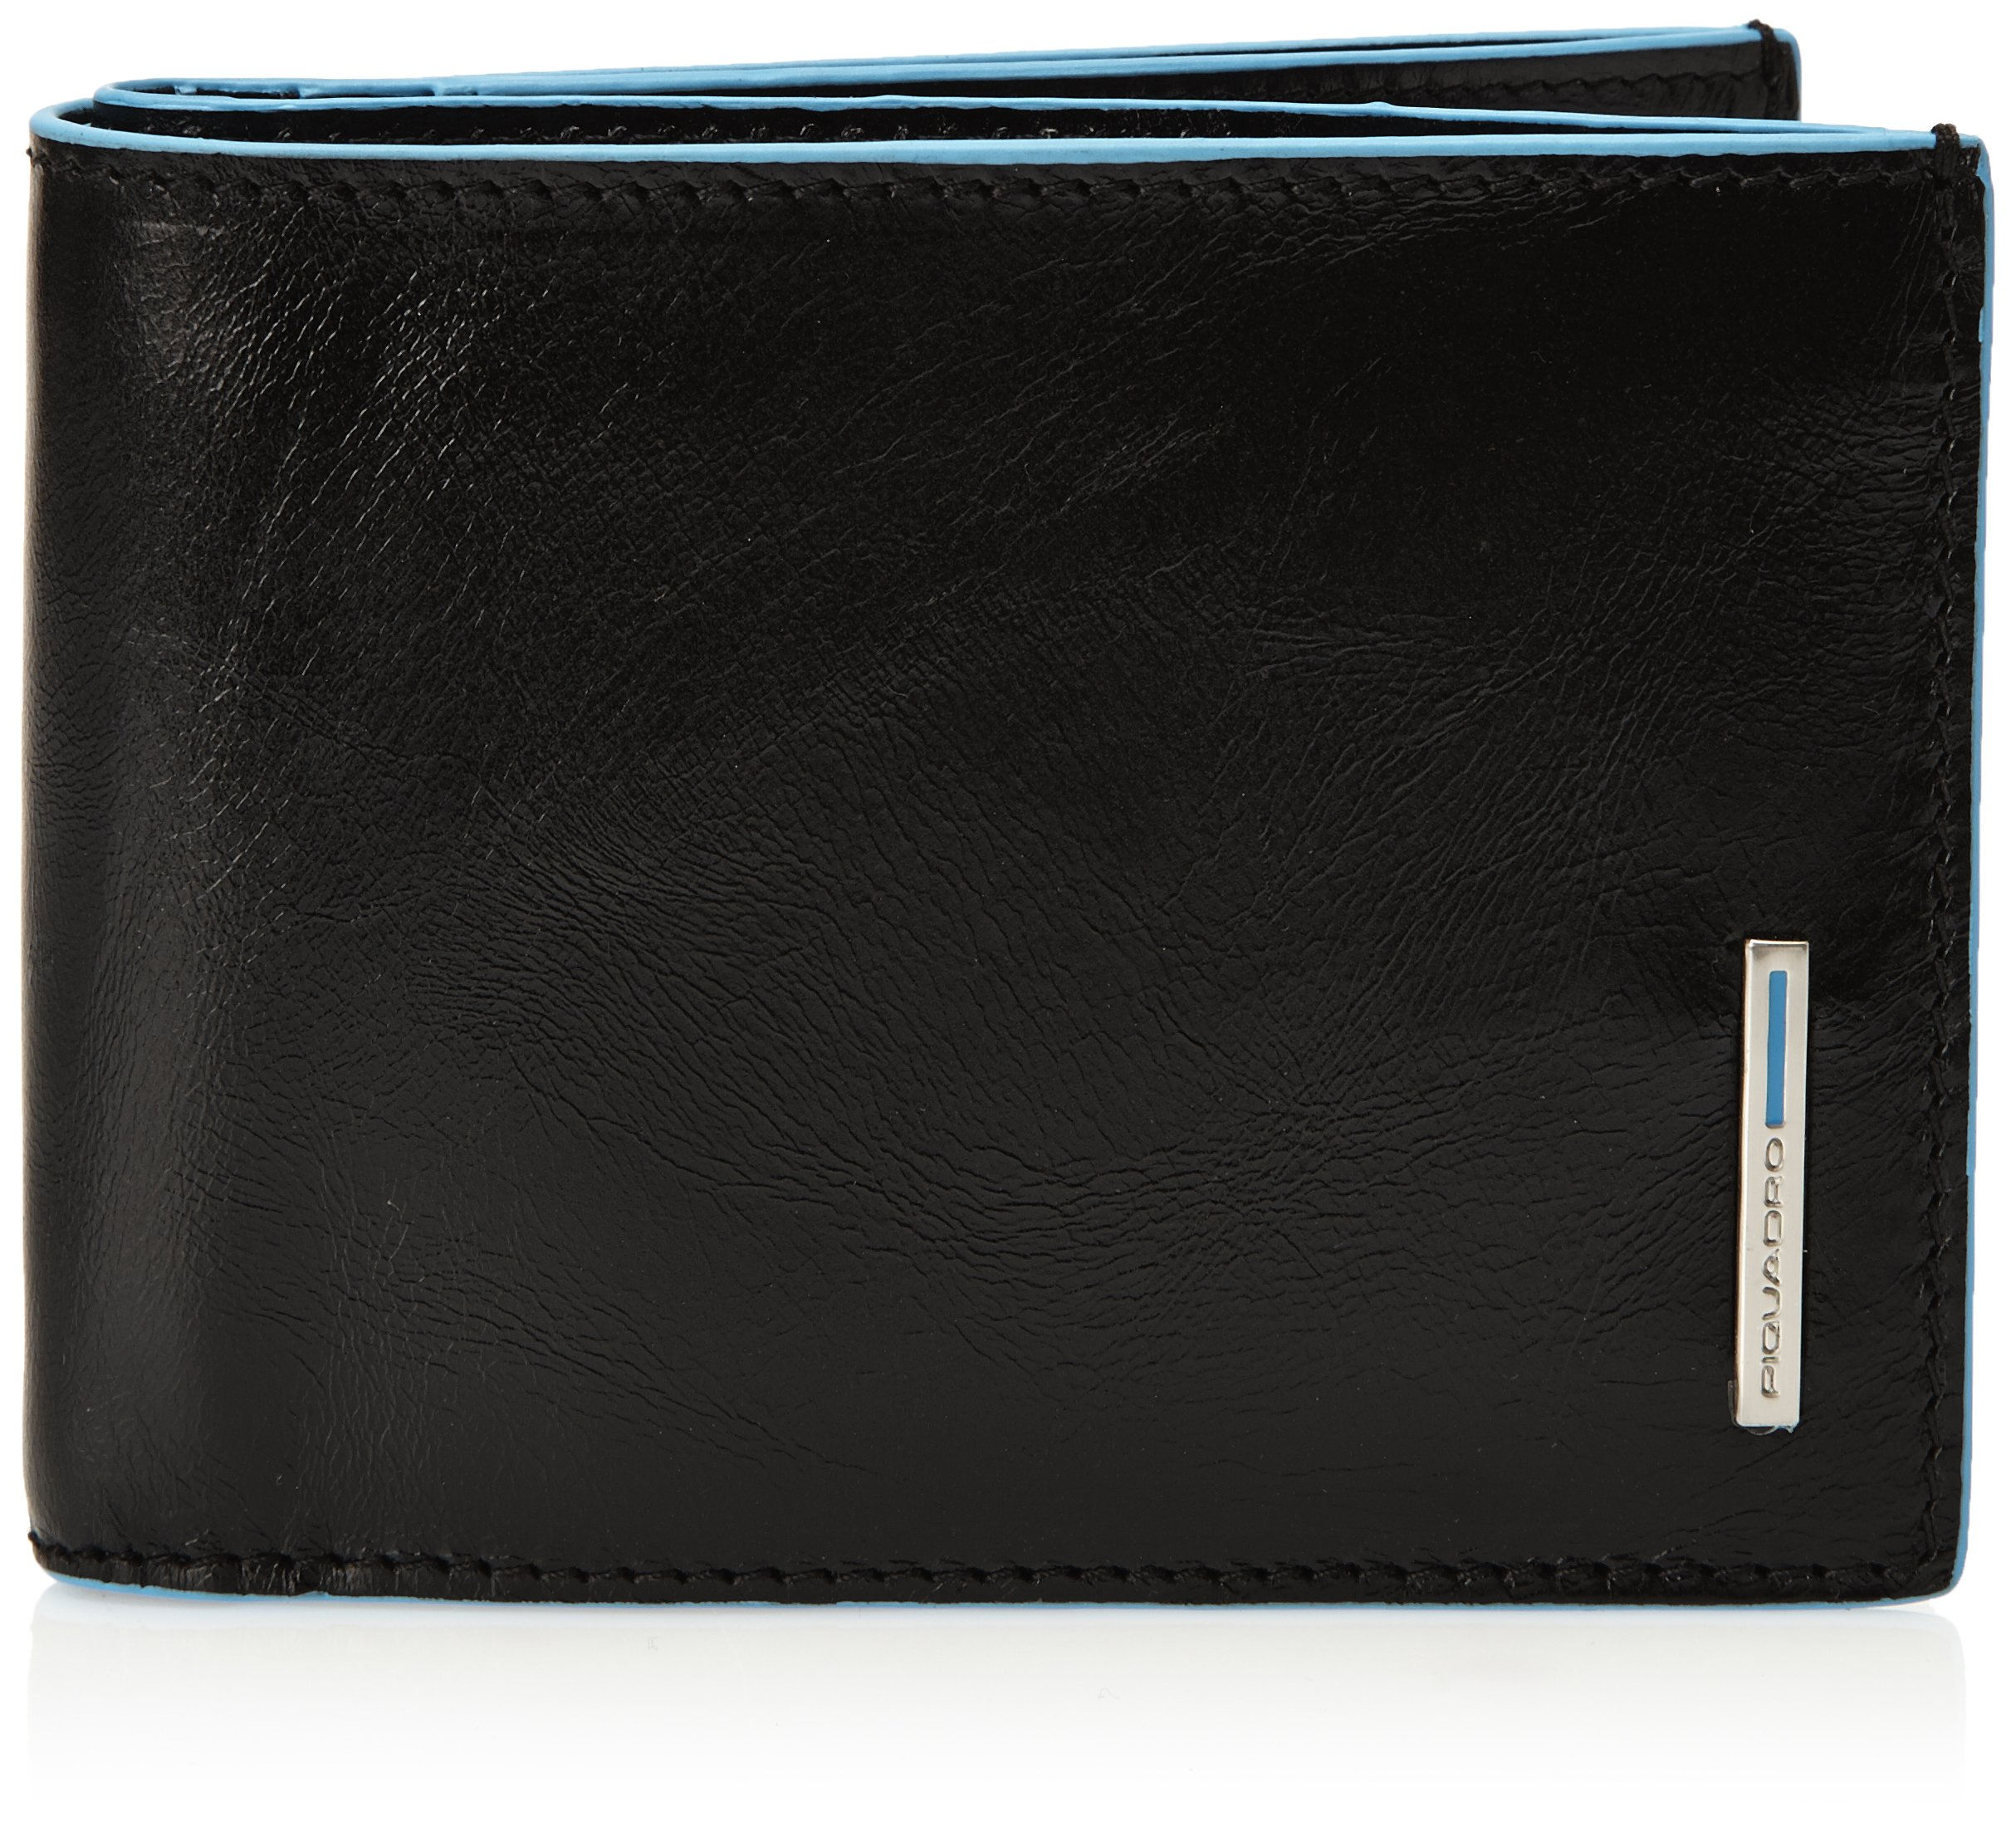 Piquadro Leather Man's Wallet with 12 Credit Card Slots, Black, One Size